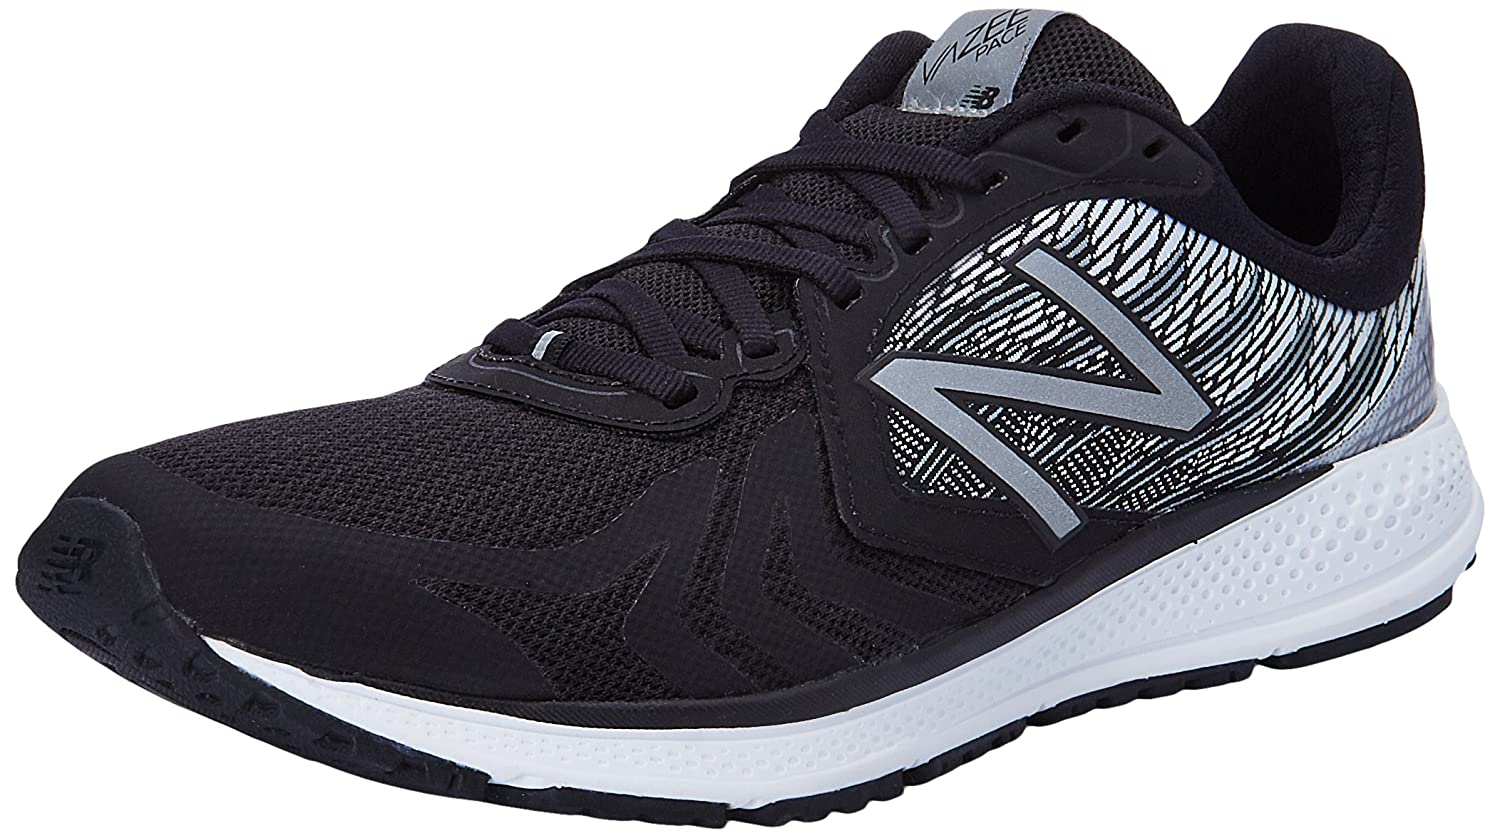 New balance vazee rush v2 mens running shoes black multi online - Amazon Com New Balance Men S Vazee Pace V2 Running Shoe Road Running